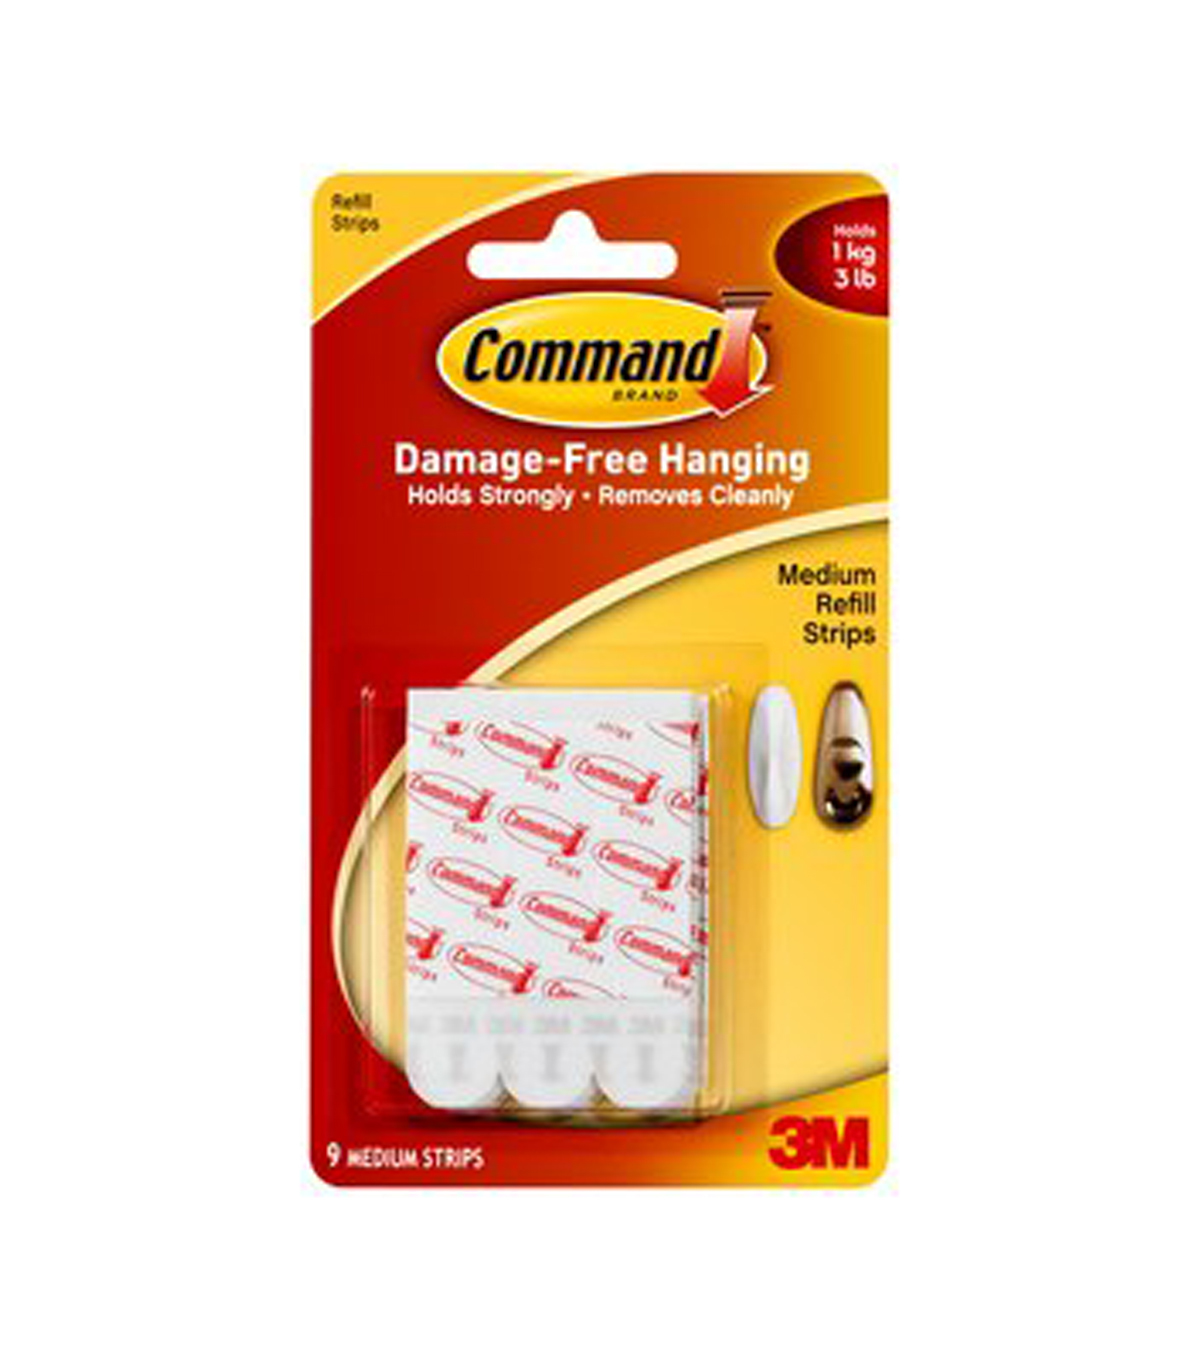 Command Medium Refill Strips